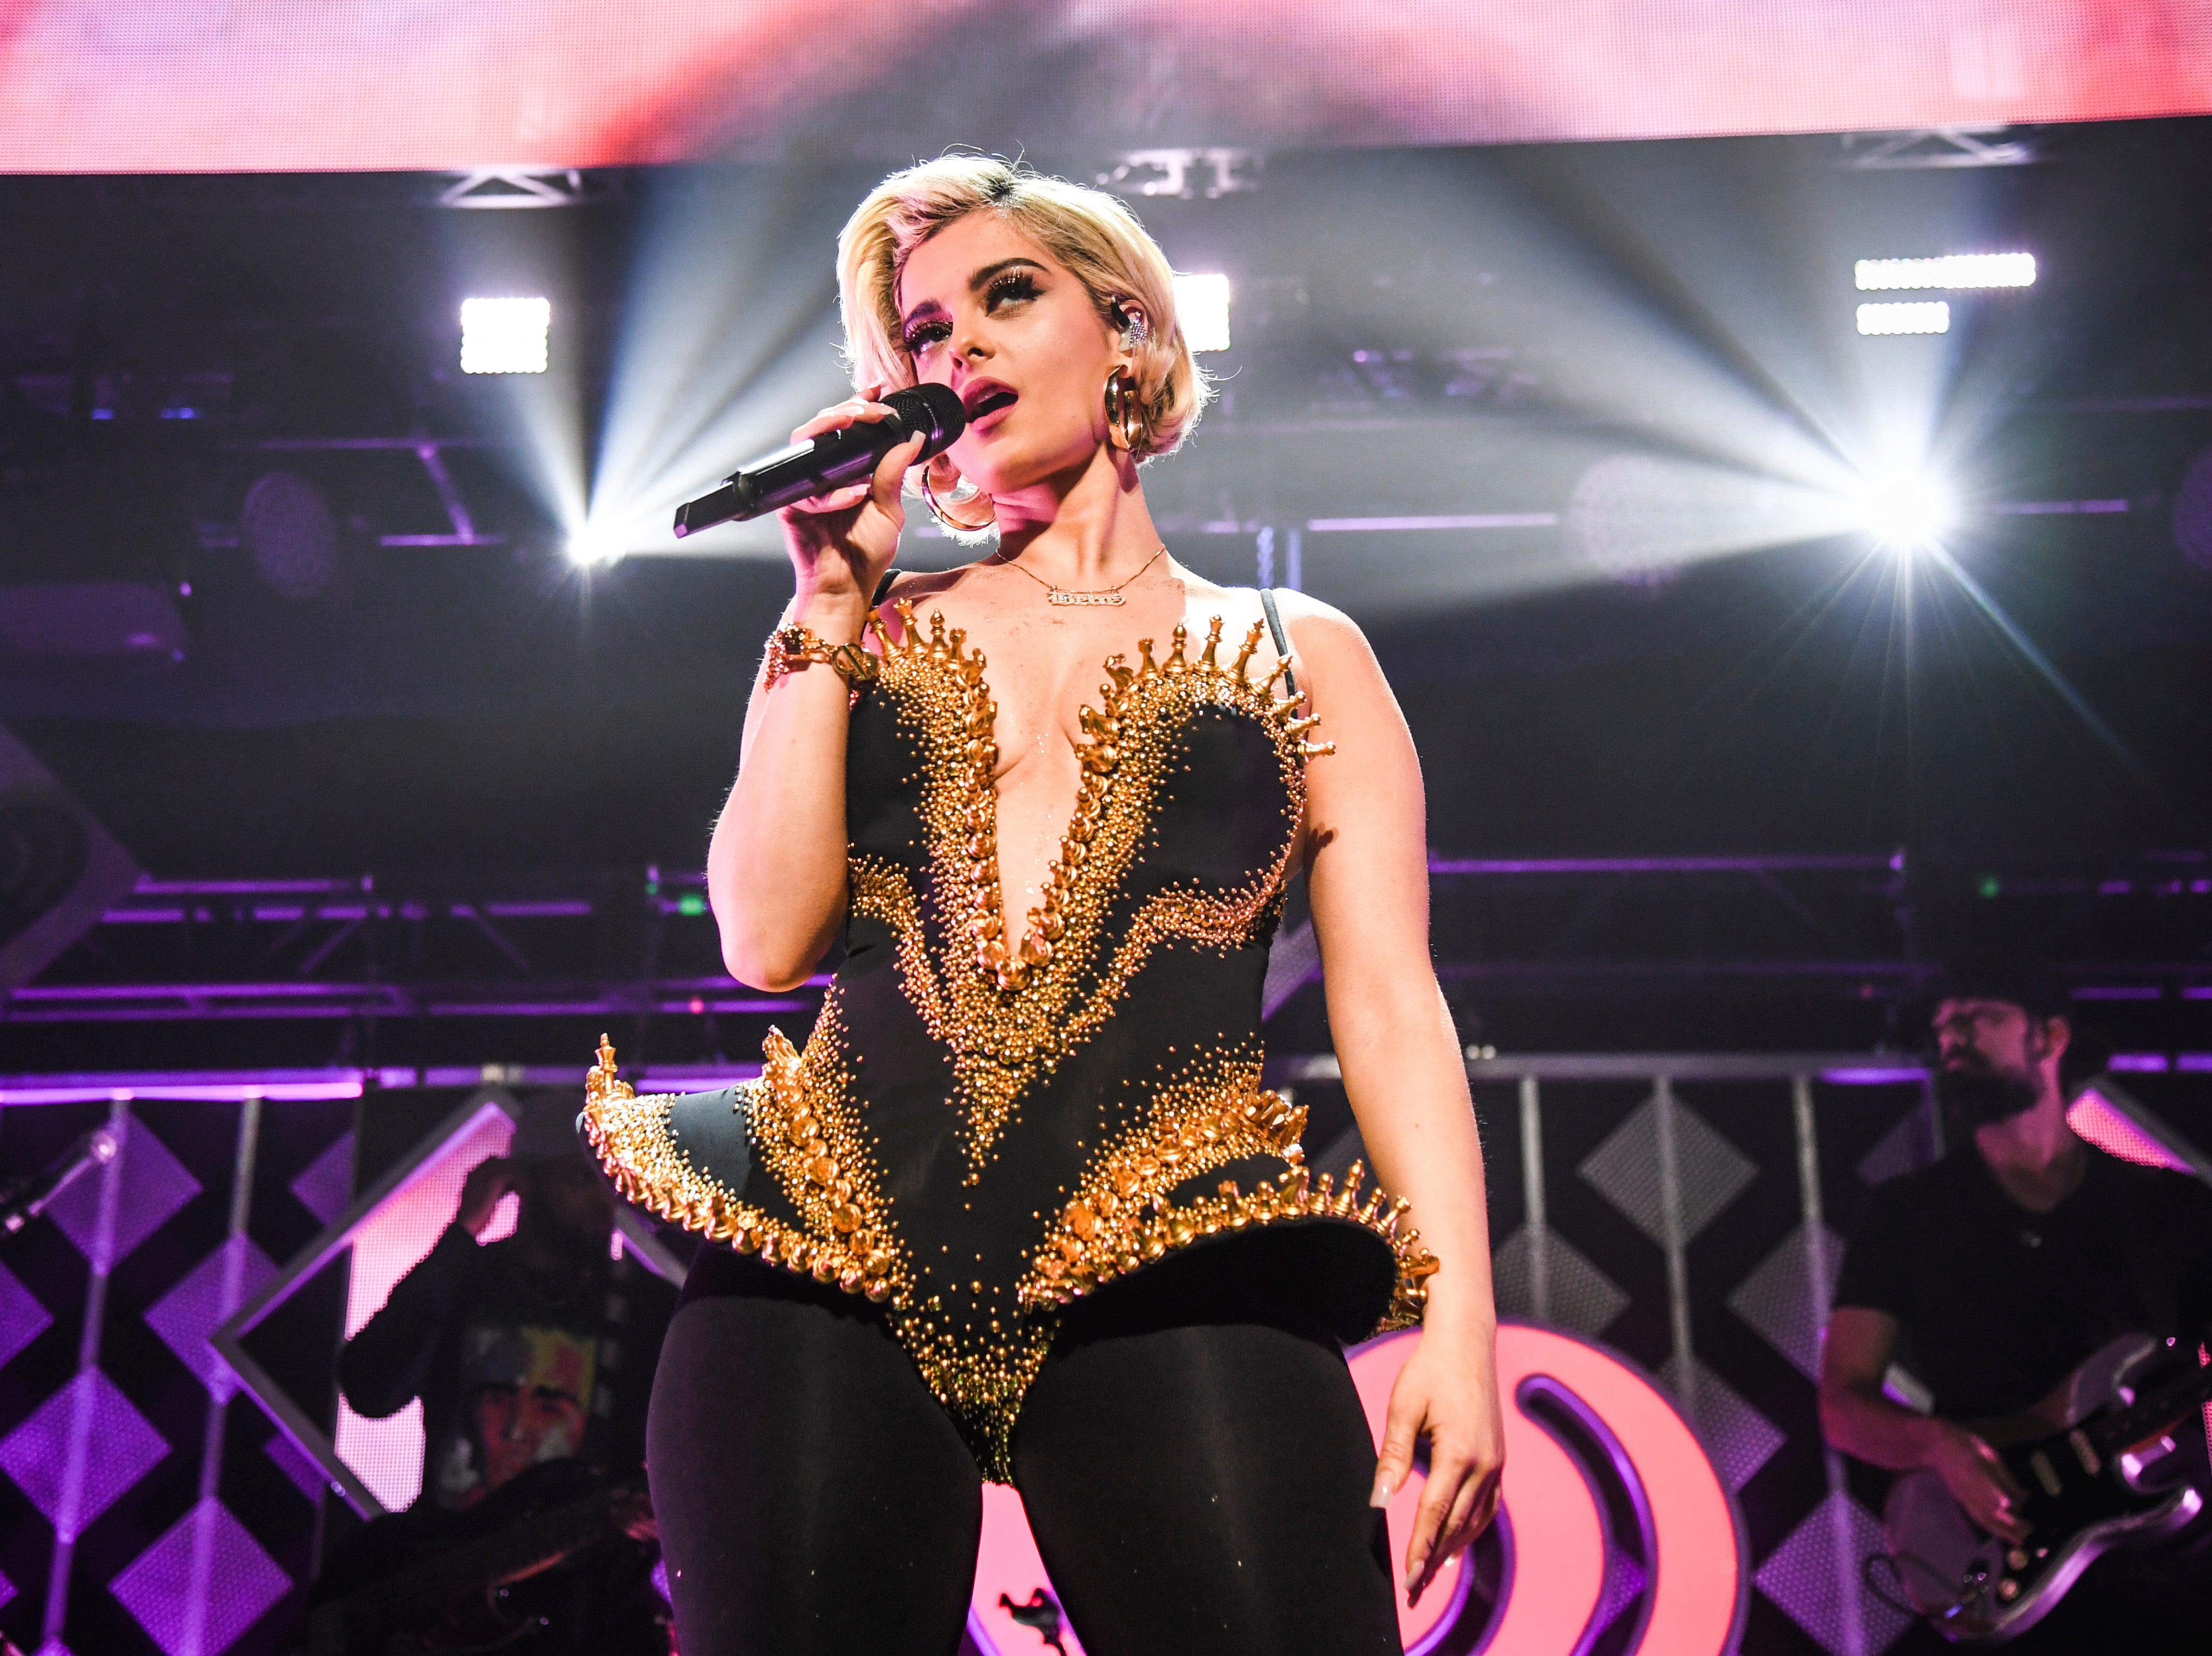 Bebe Rexha performs at Y100's Jingle Ball at BB&T Center on Sunday, Dec. 16, 2018, in Sunrise, Fla. (Photo by Amy Harris/Invision/AP) ORG XMIT: FLRP114